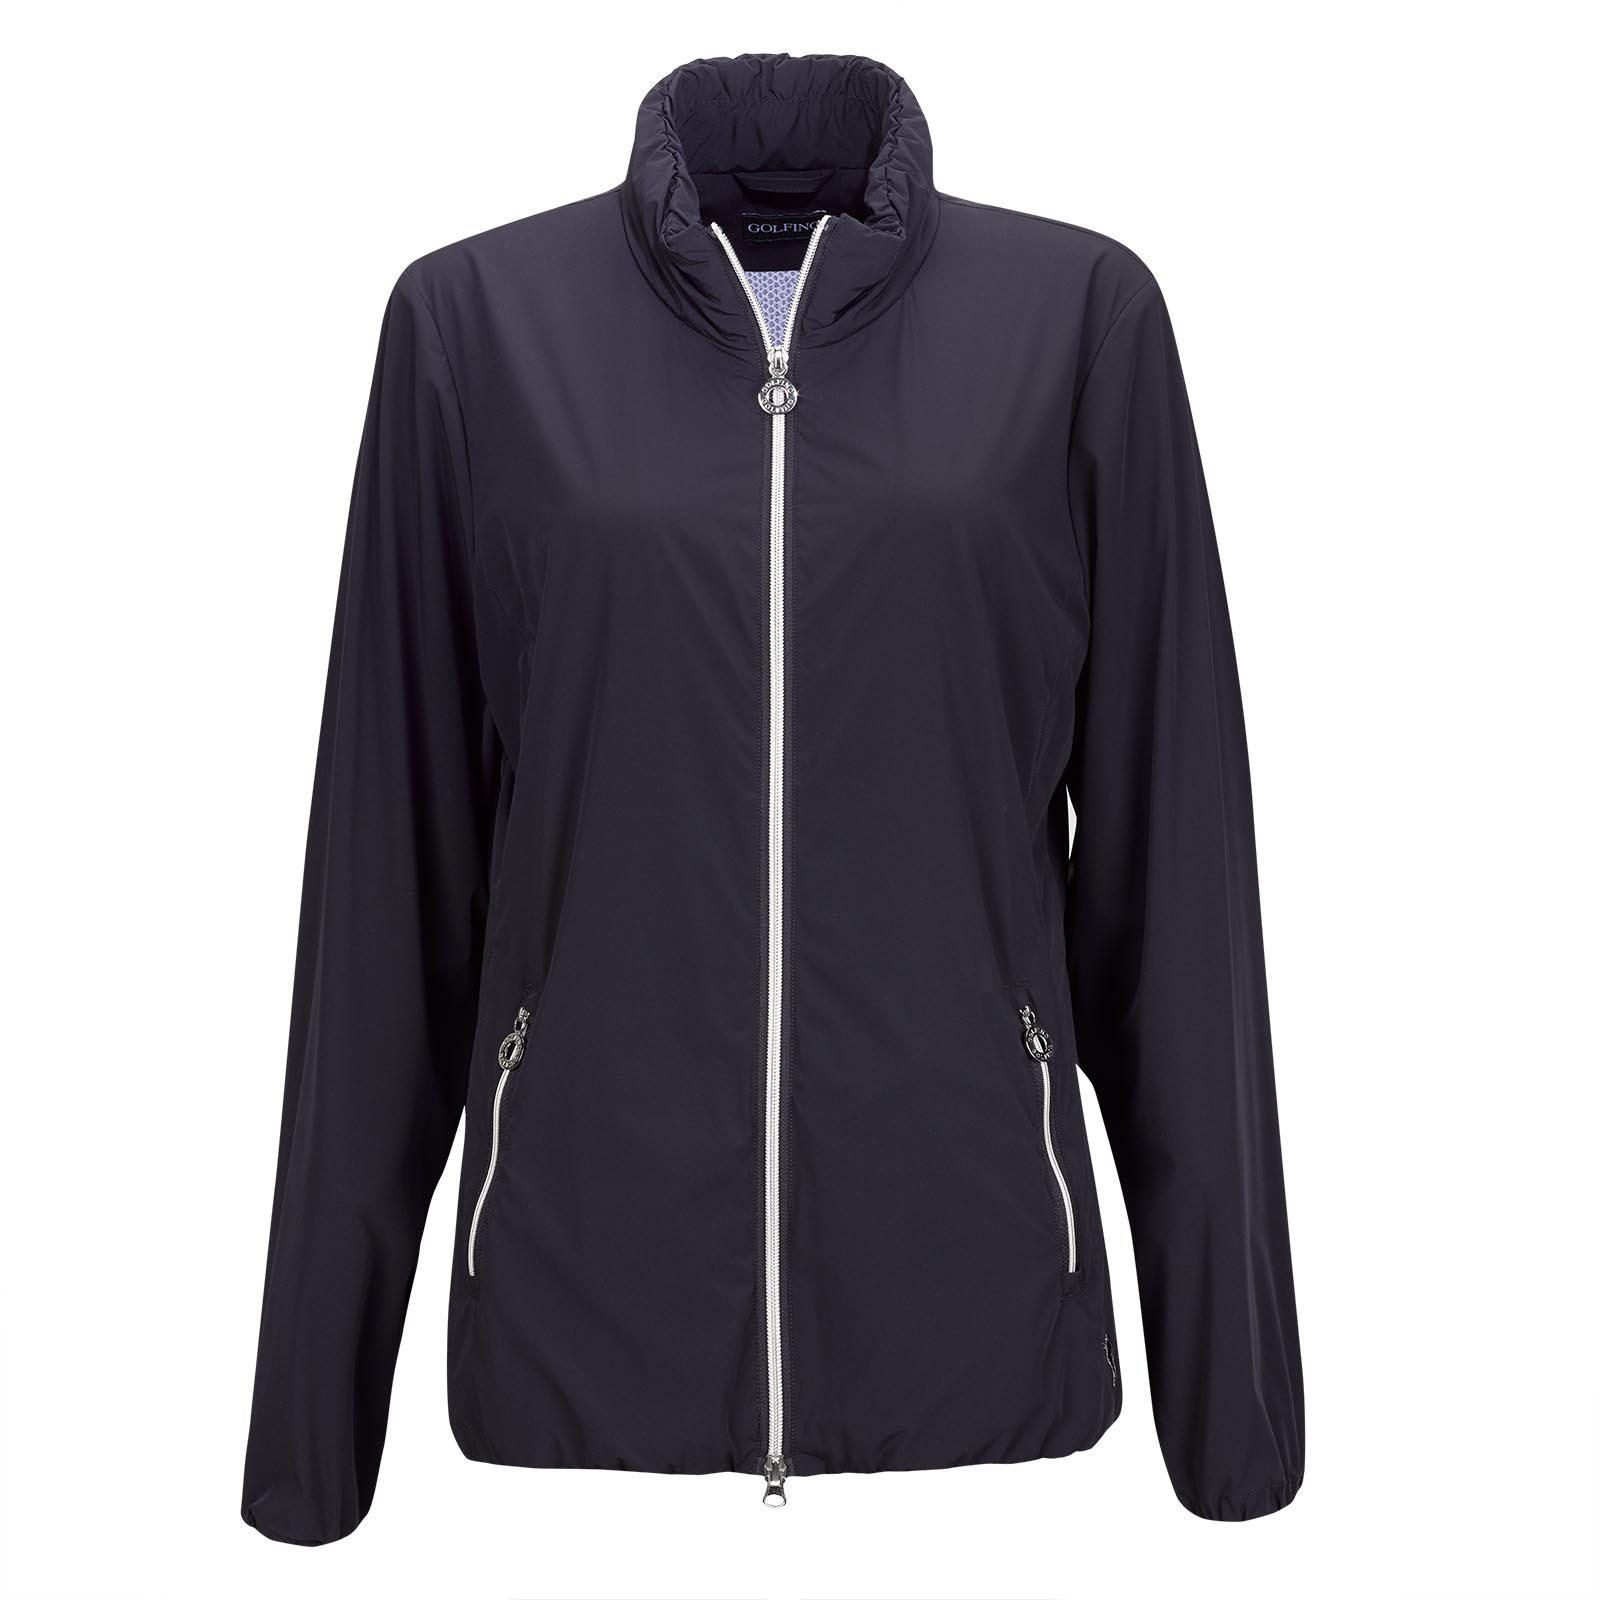 Ladies' functional stretch jacket for maximum flexibility in golf